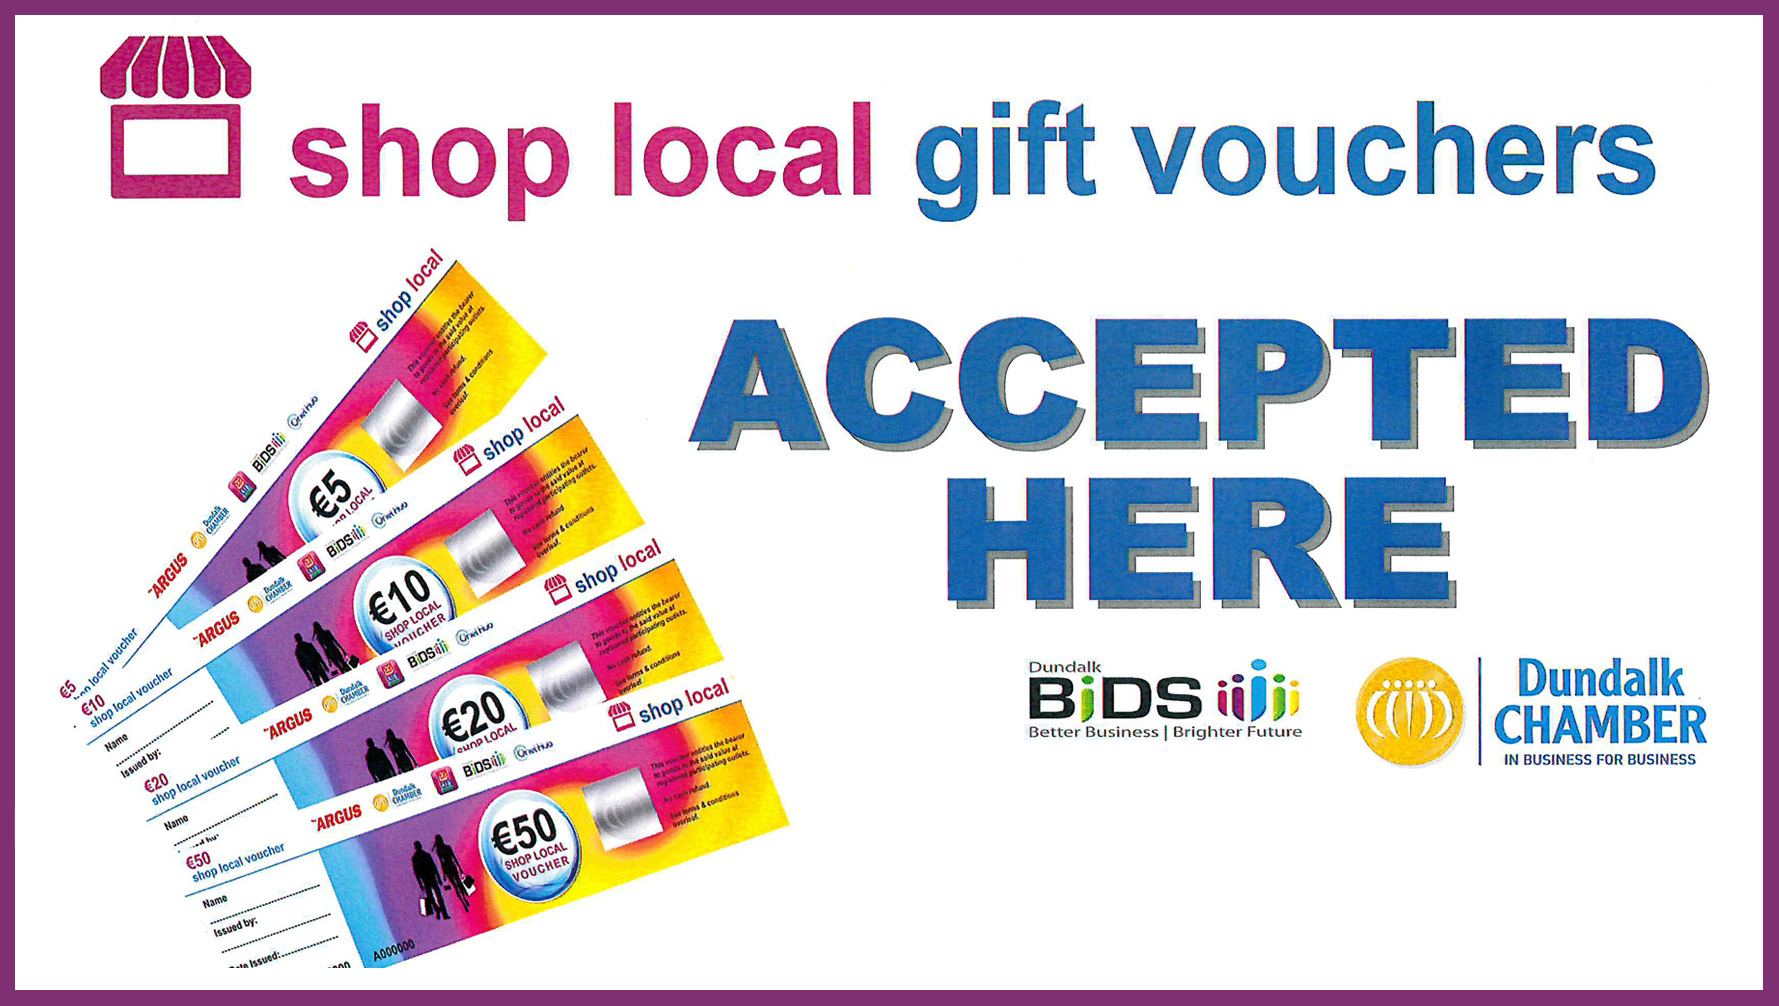 Dundalk Local Voucher